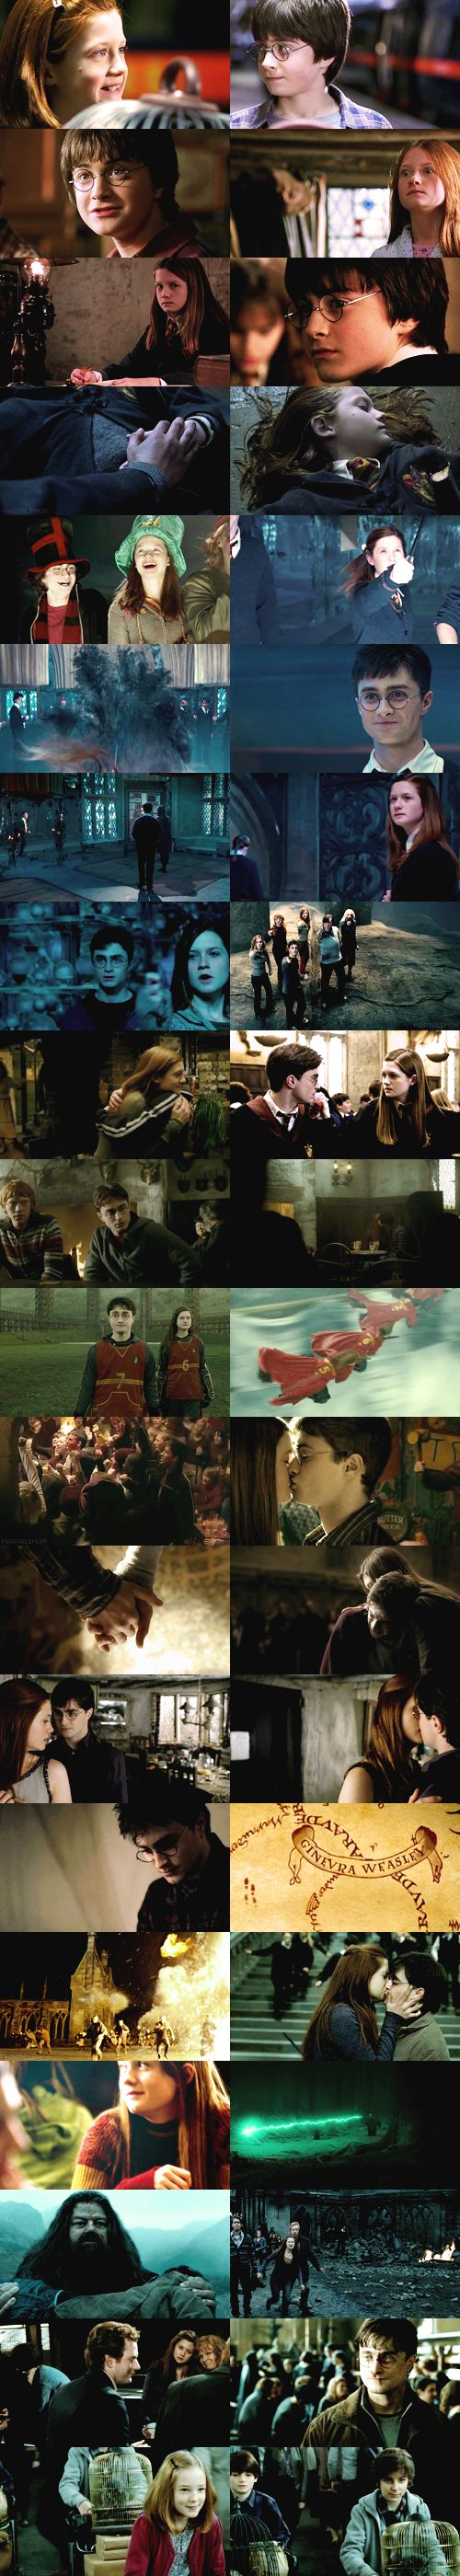 GINNY AND HARRY oh MY gosh but her face whenever she saw him in the first like 4 movies is priceless! <3